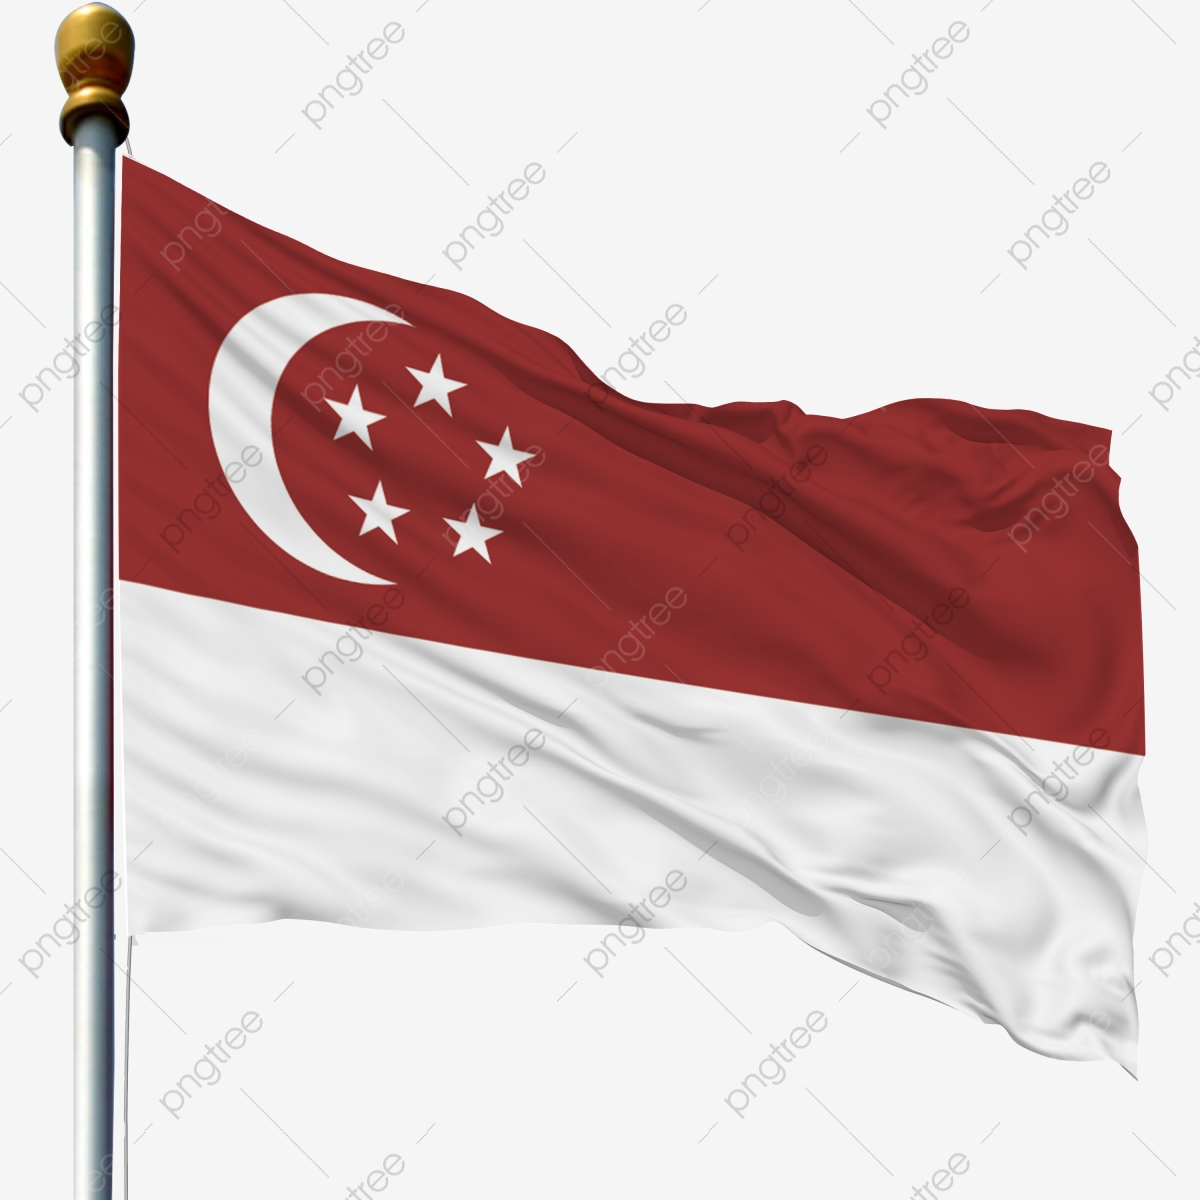 Singapore Flag, Singapore, Flag, Foreign Flag PNG and Vector.